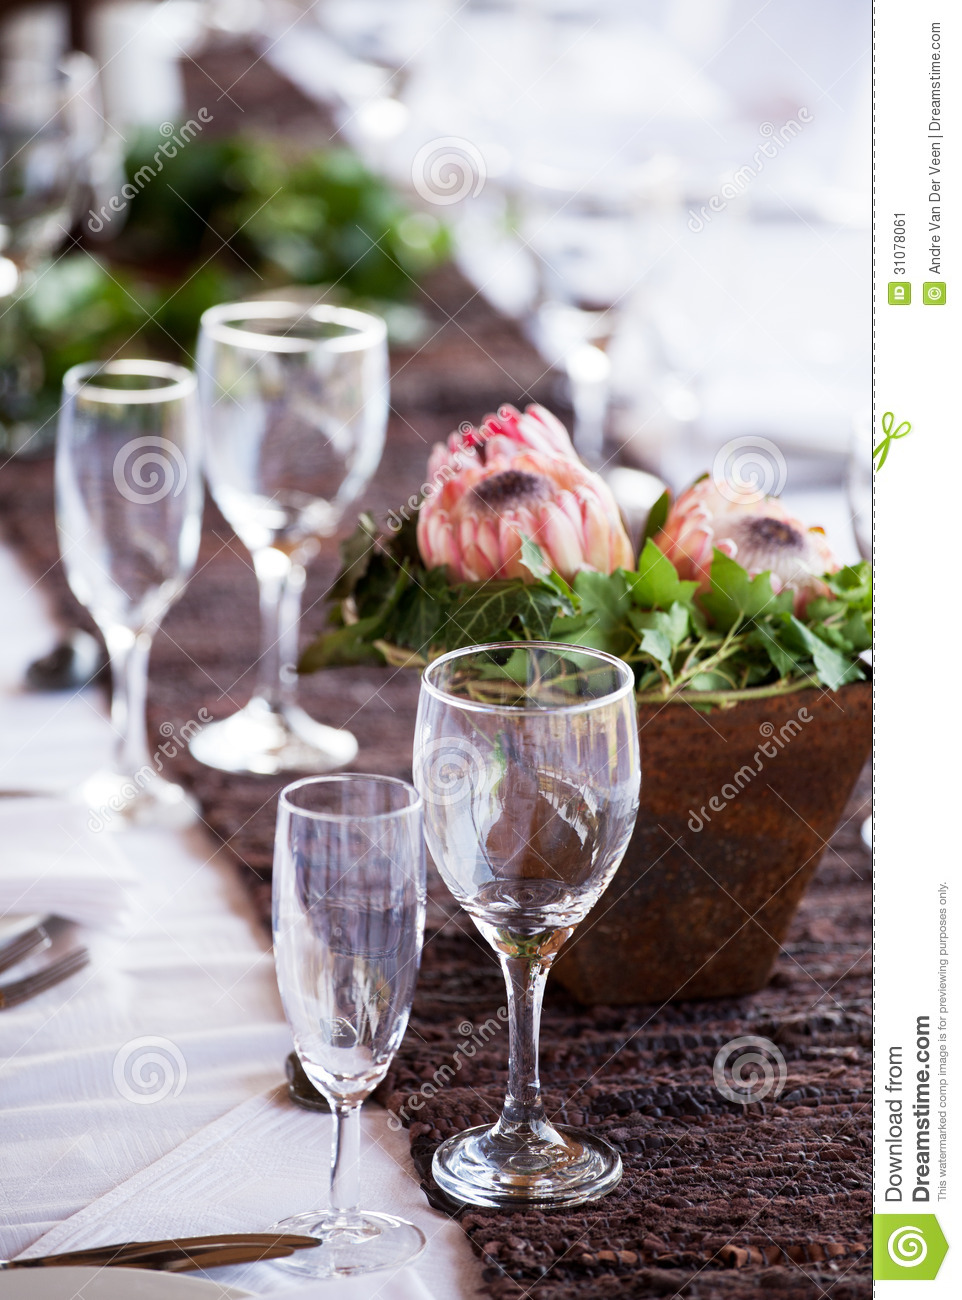 Wine And Champagne Glasses On A Table With Protea Flowers